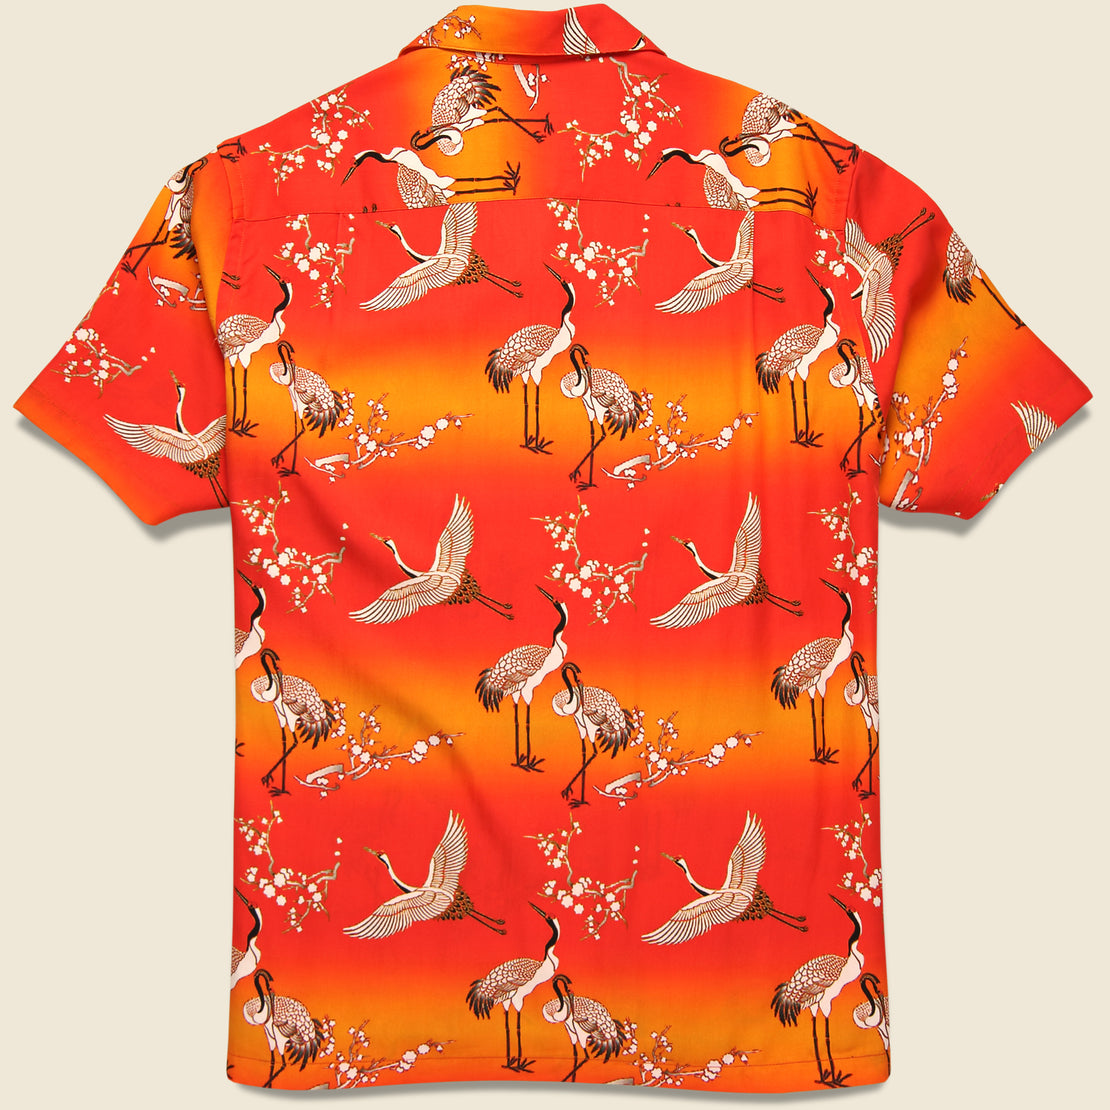 Tazu Camp Shirt - Pink/Orange